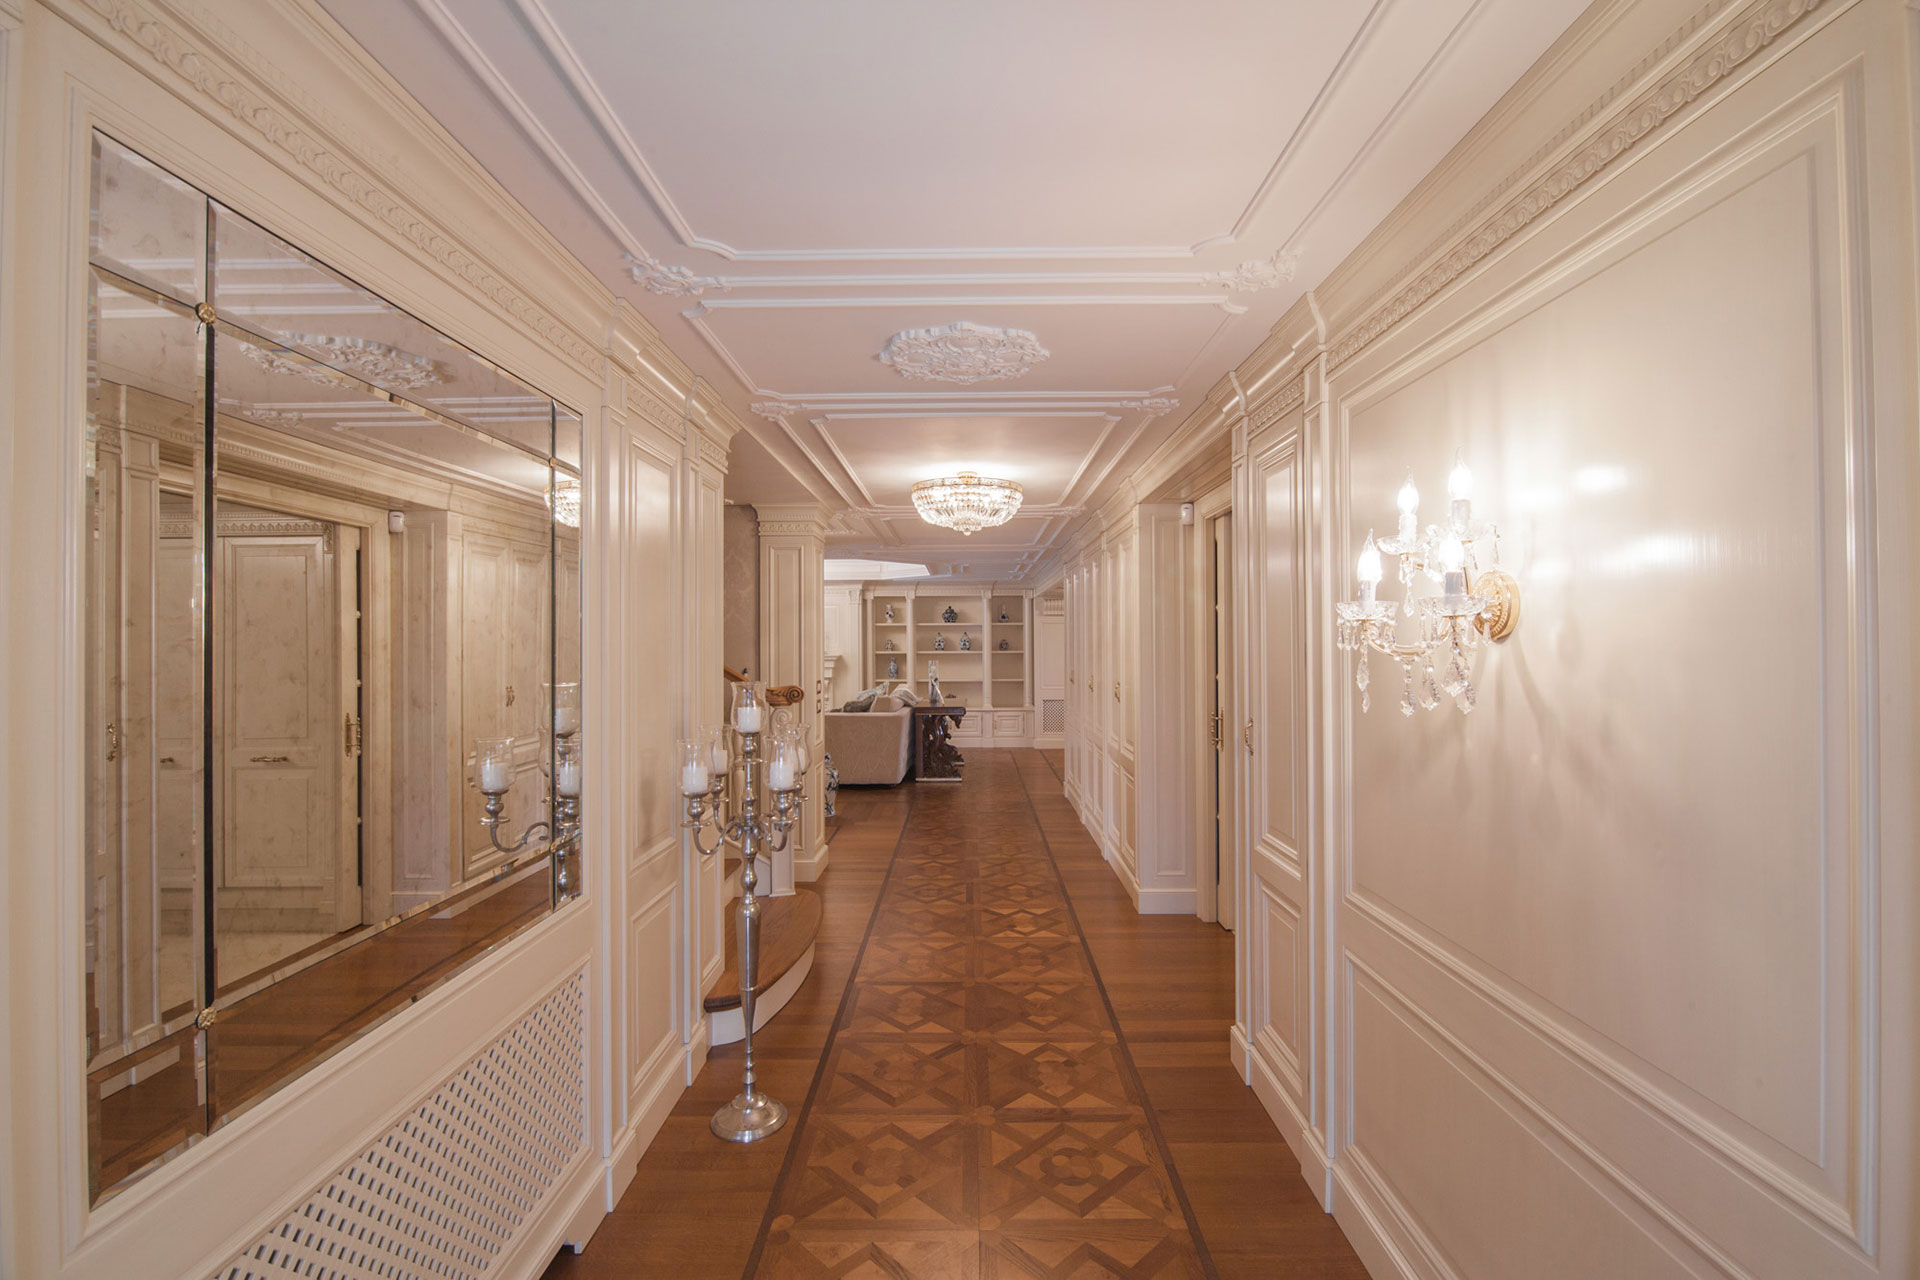 Faoma Entrance in classic boiserie